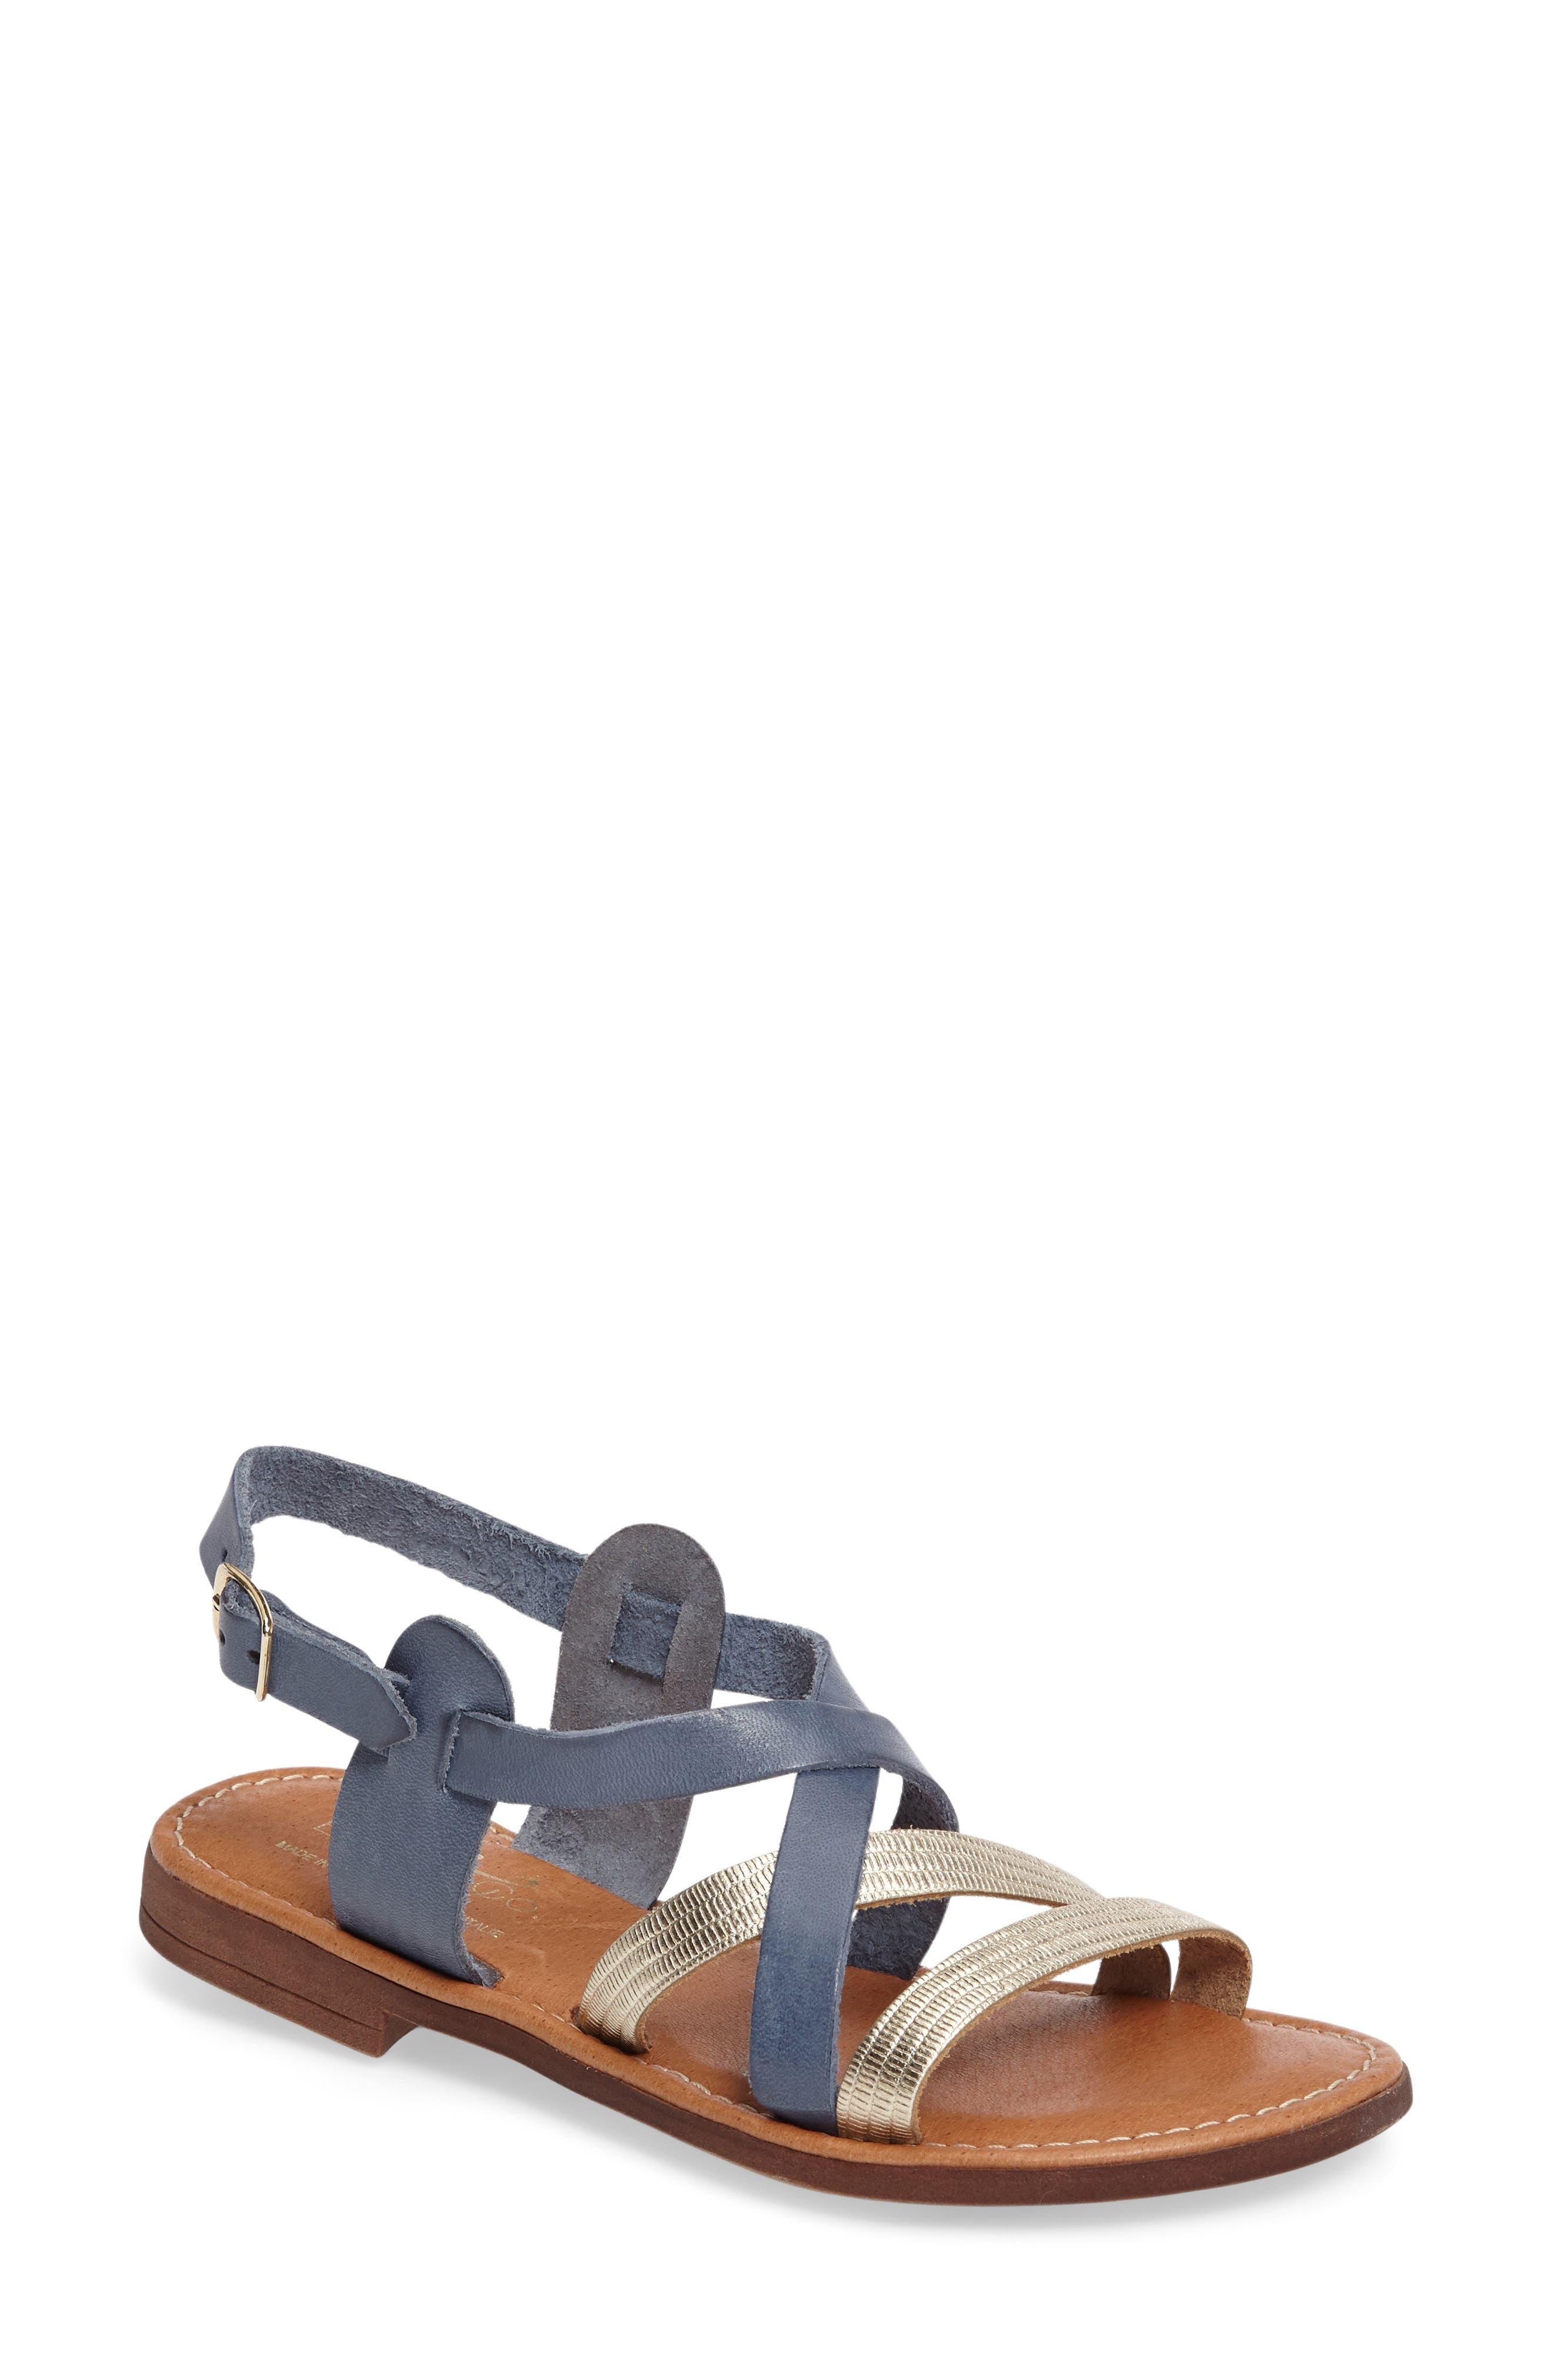 Bos. & Co. Ionna Sandal (Women)